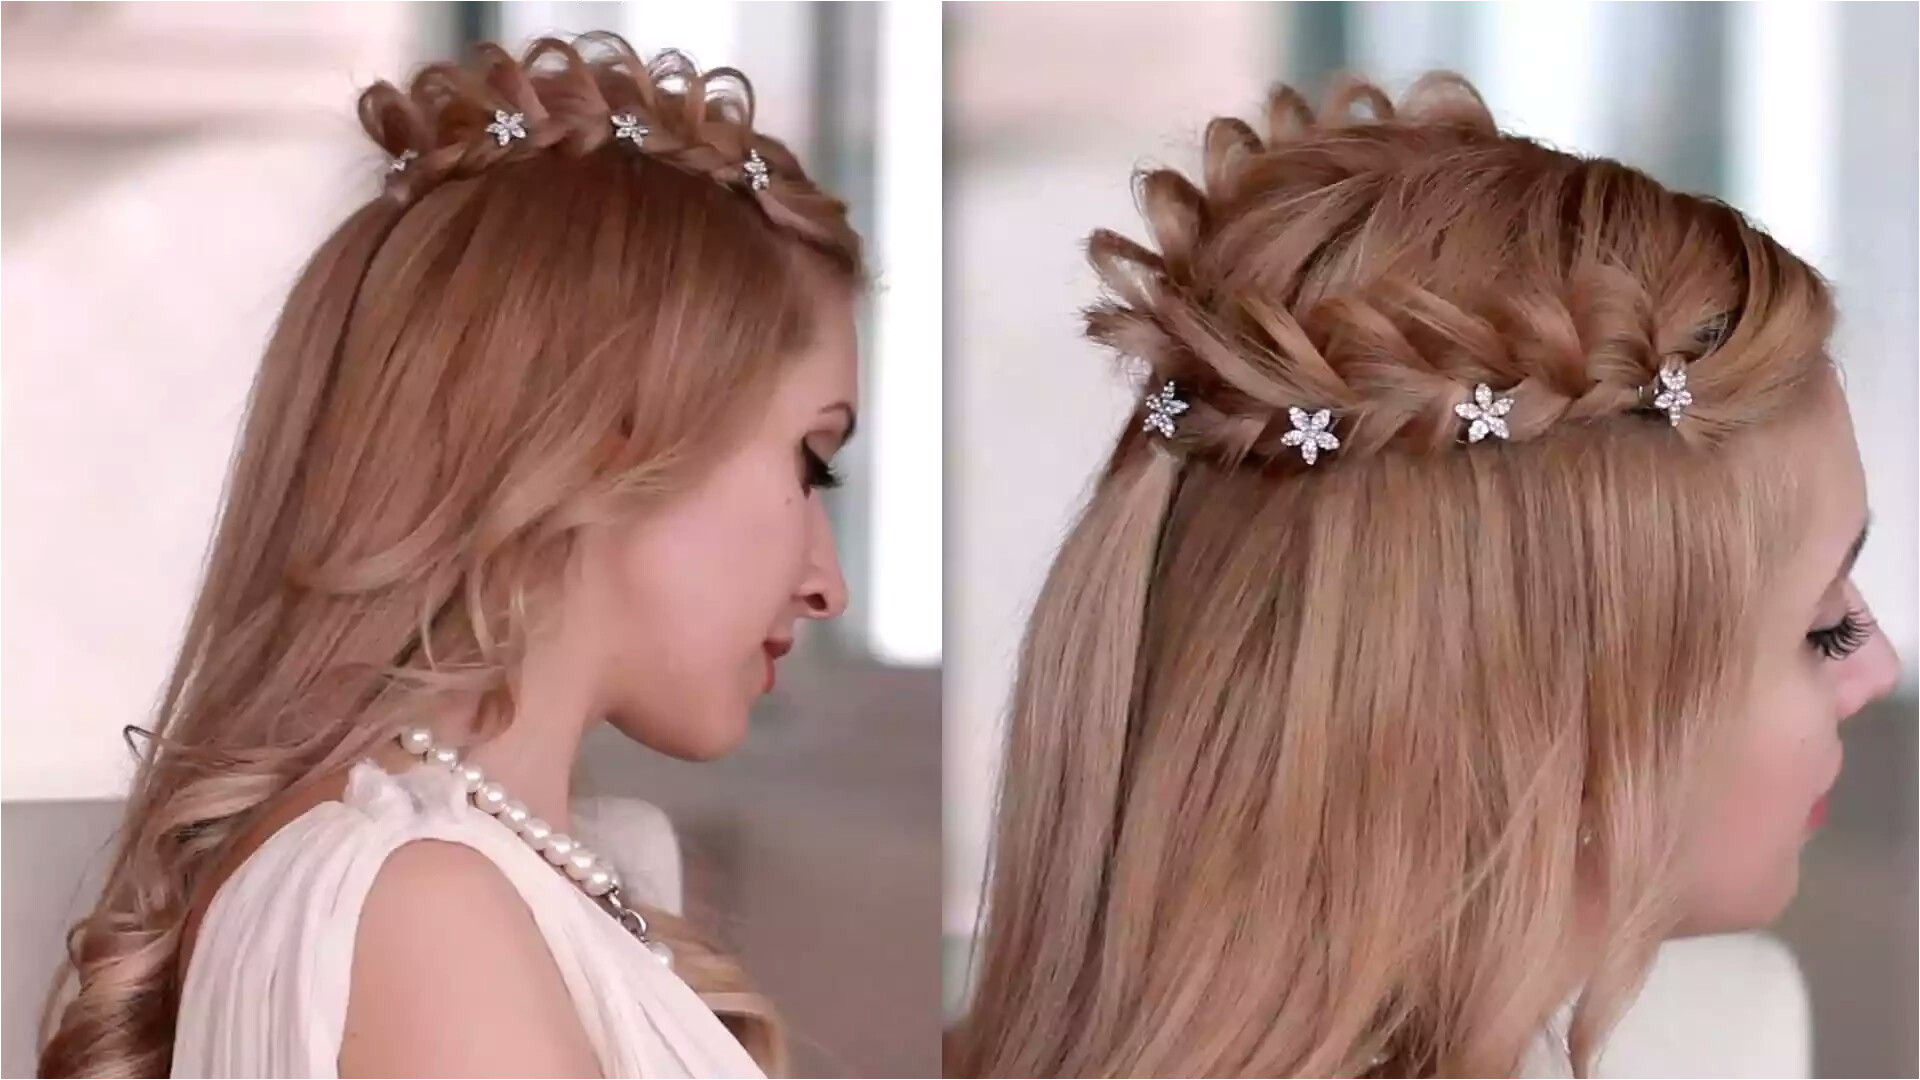 Diy Hairstyles Braided Crown Hairstyles Step By Step Hairstyles Summer Hairstyles Haircuts